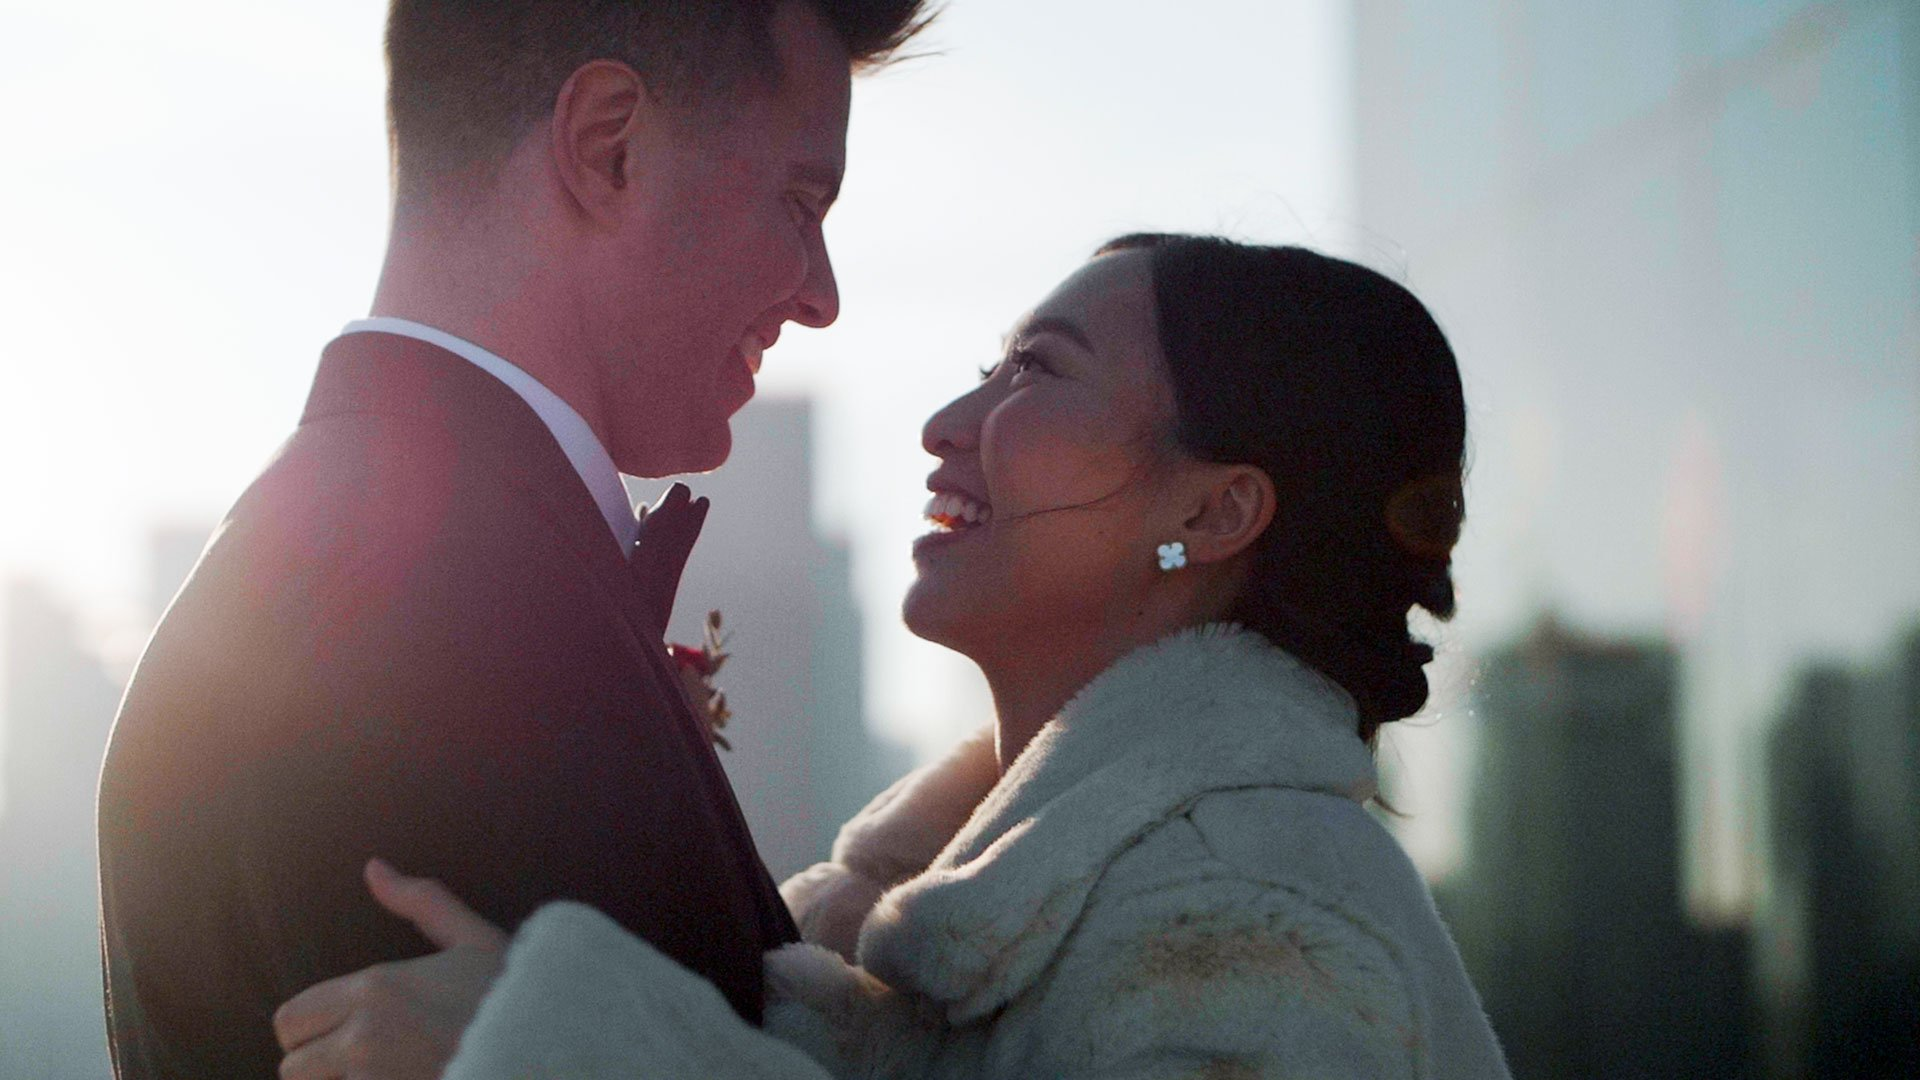 Bride and Groom embrace on the rooftop at their globe and mail centre wedding by toronto wedding cinematography kismet creative wedding films